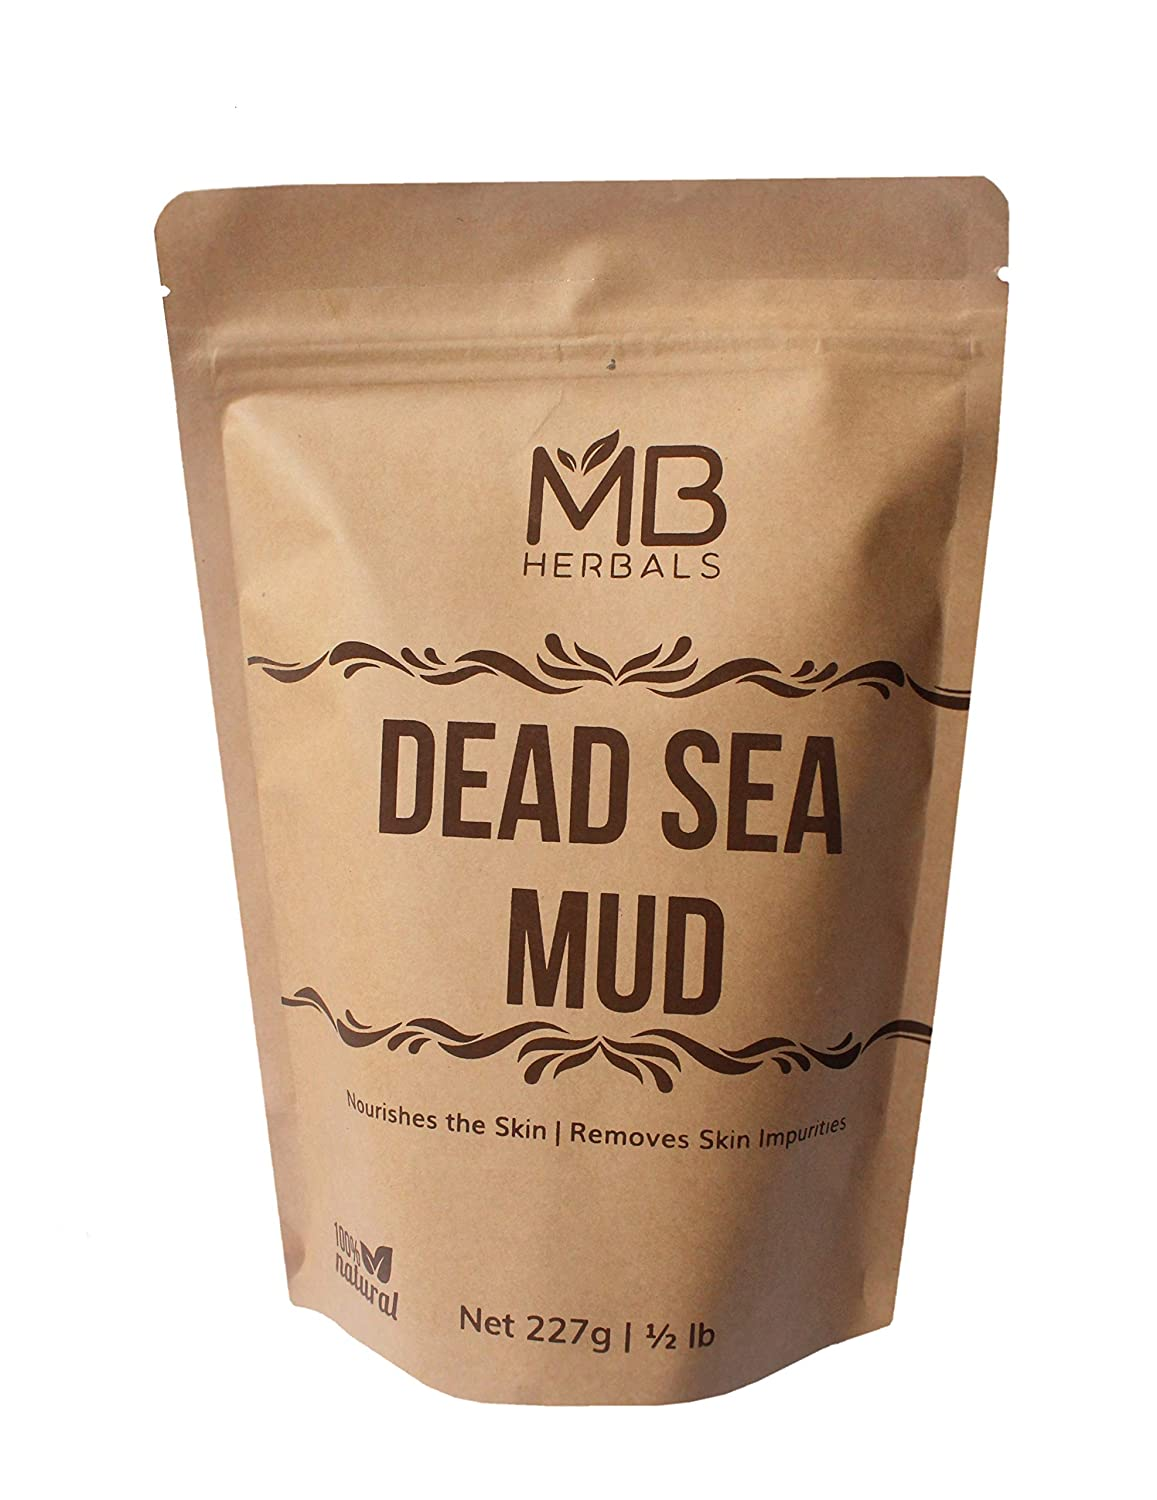 MB Herbals Dead Sea Mud 227 Gram | Half Pound | Nourishes Exfoliates Softens & Detoxify the Skin | DRY CLAY POWDER : Beauty